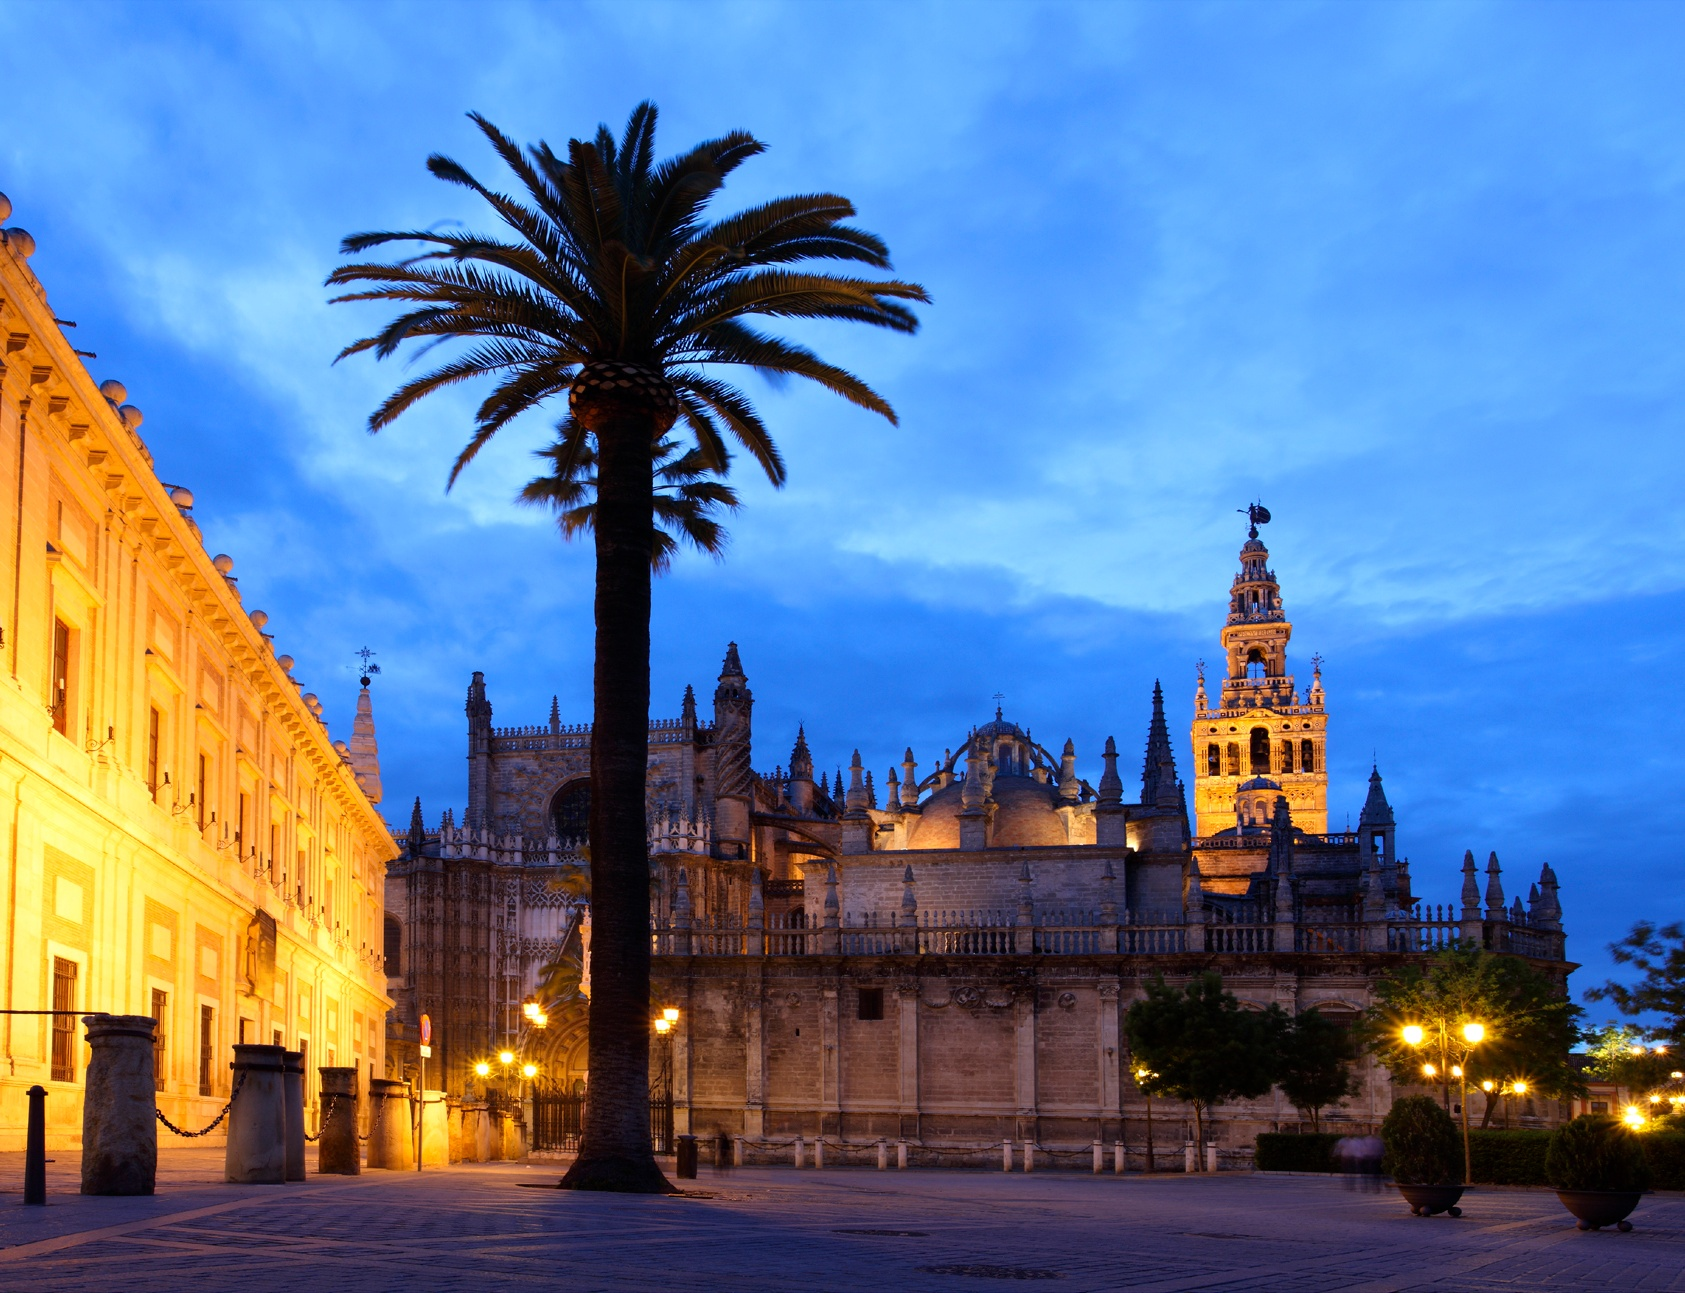 16EC_minisite_Cathedral-of-Seville.jpg